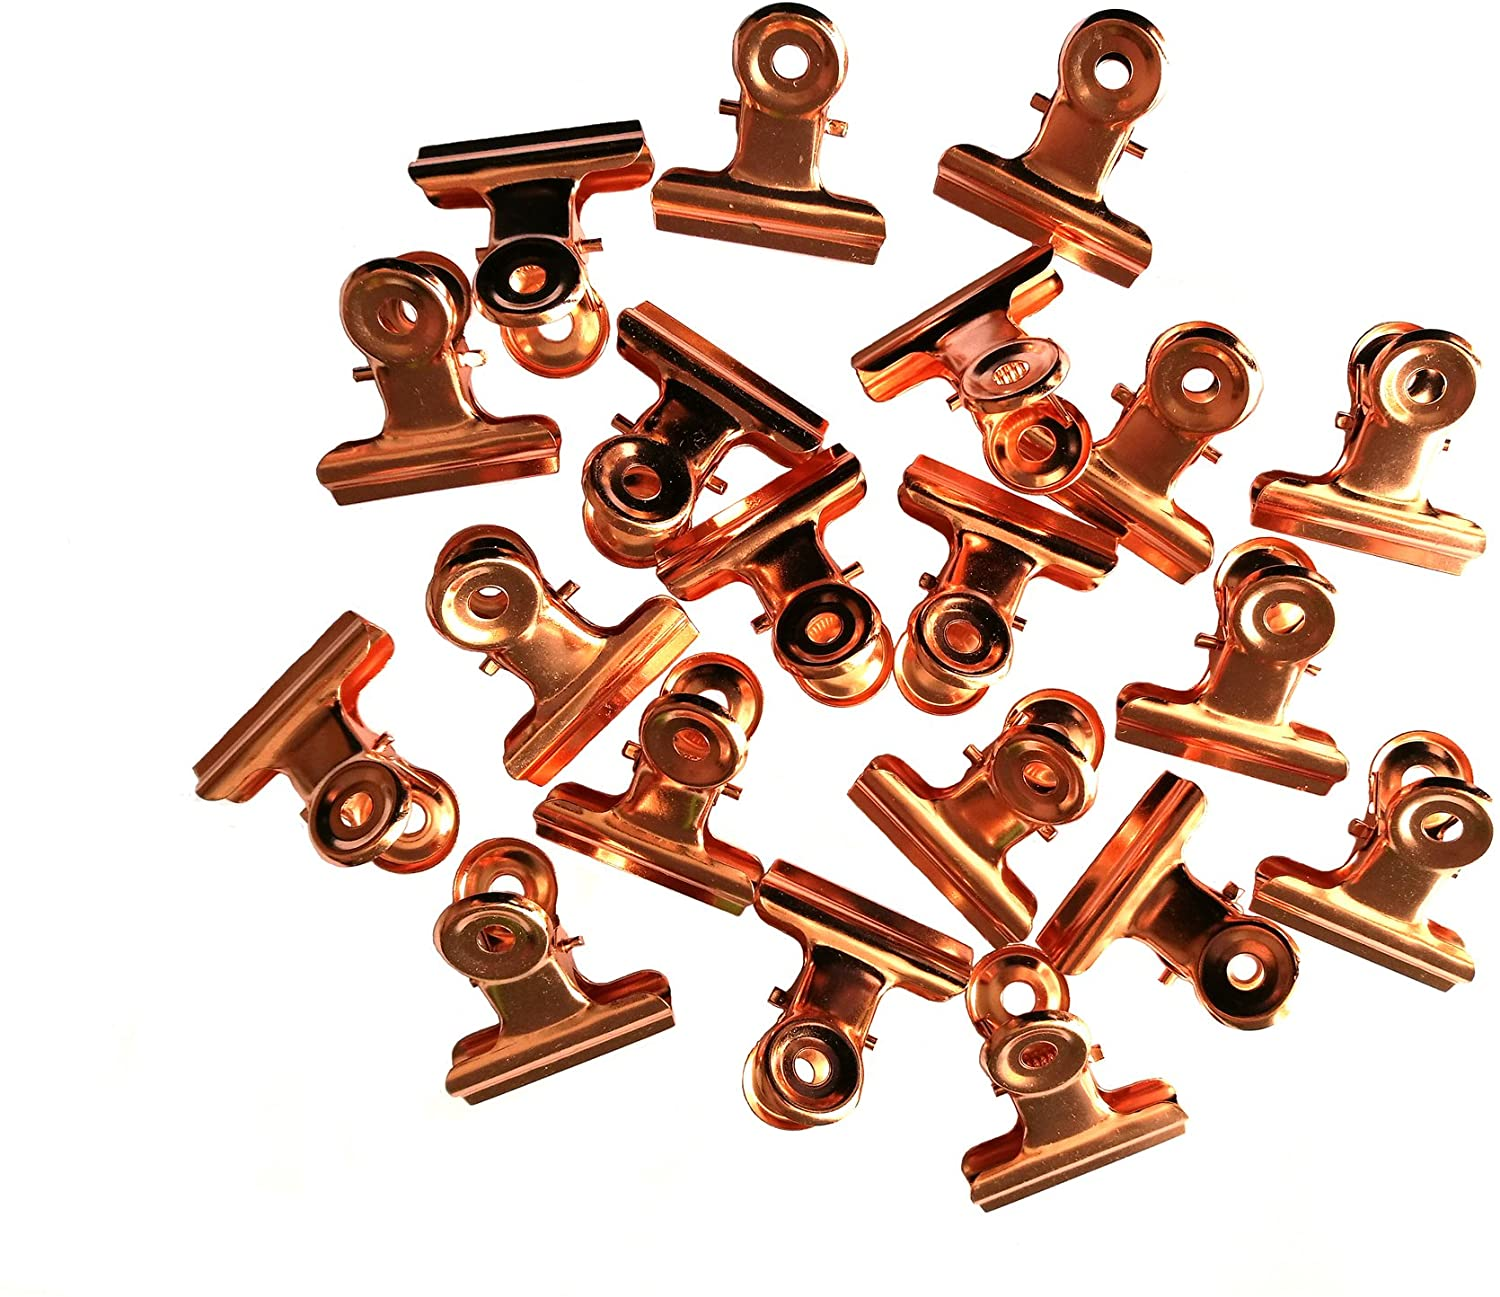 Metal Bulldog Clips, 1.25 Inches, Pack of 20 (Rose Gold)